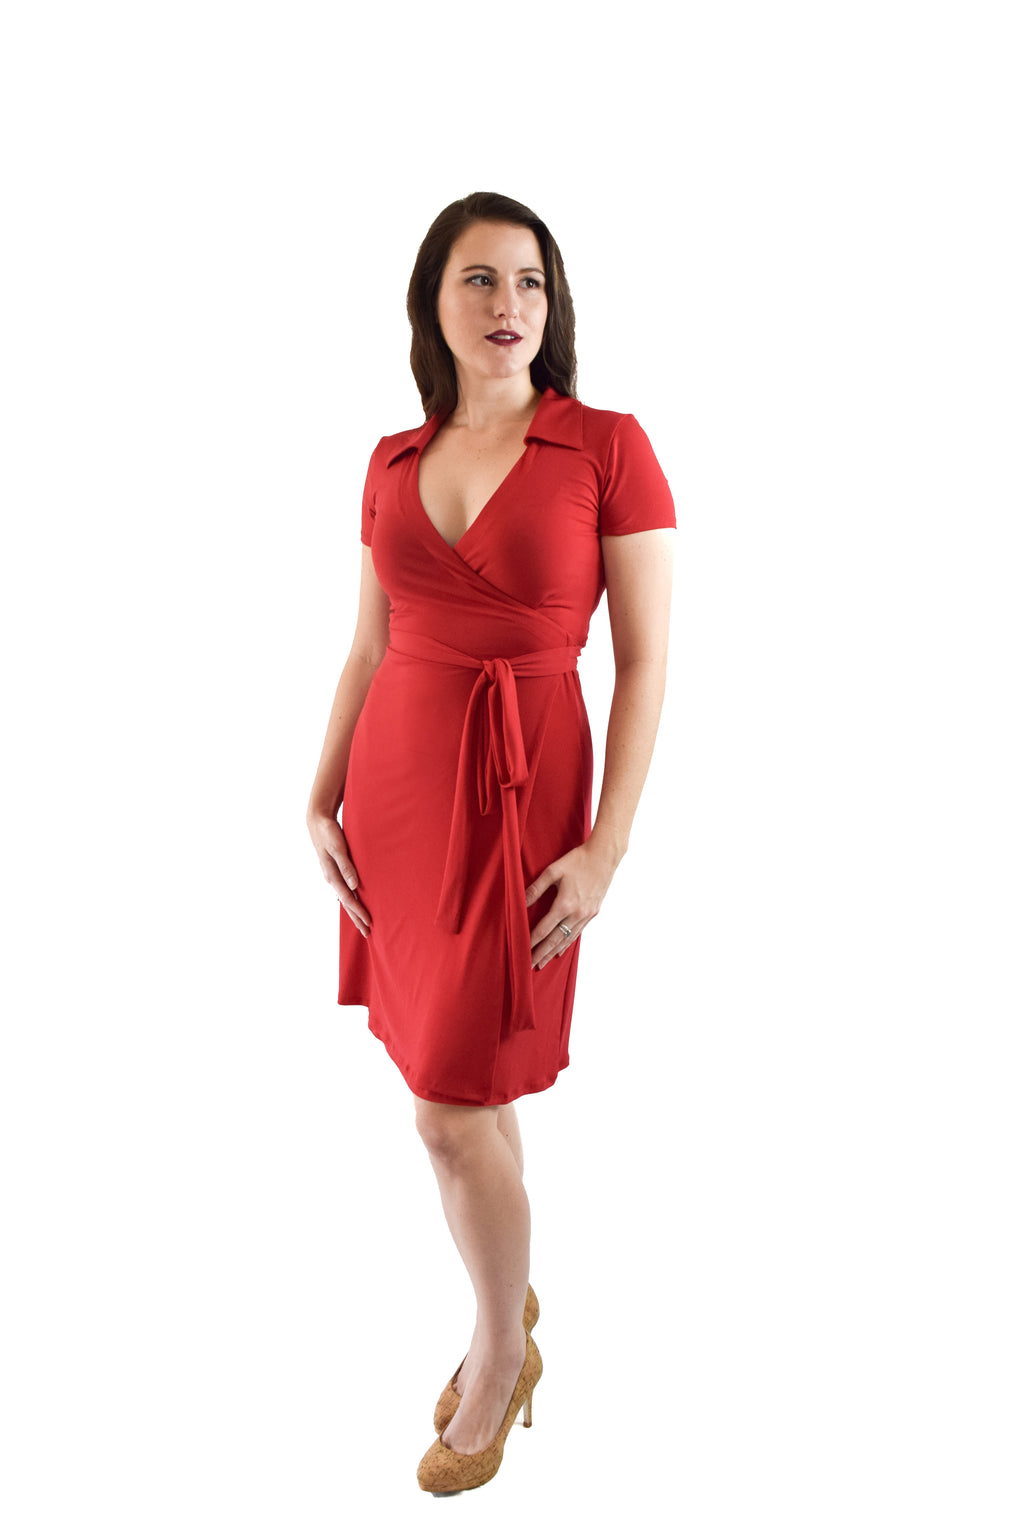 A-Line Wrap Dress, Cap Sleeves with Collar, Red